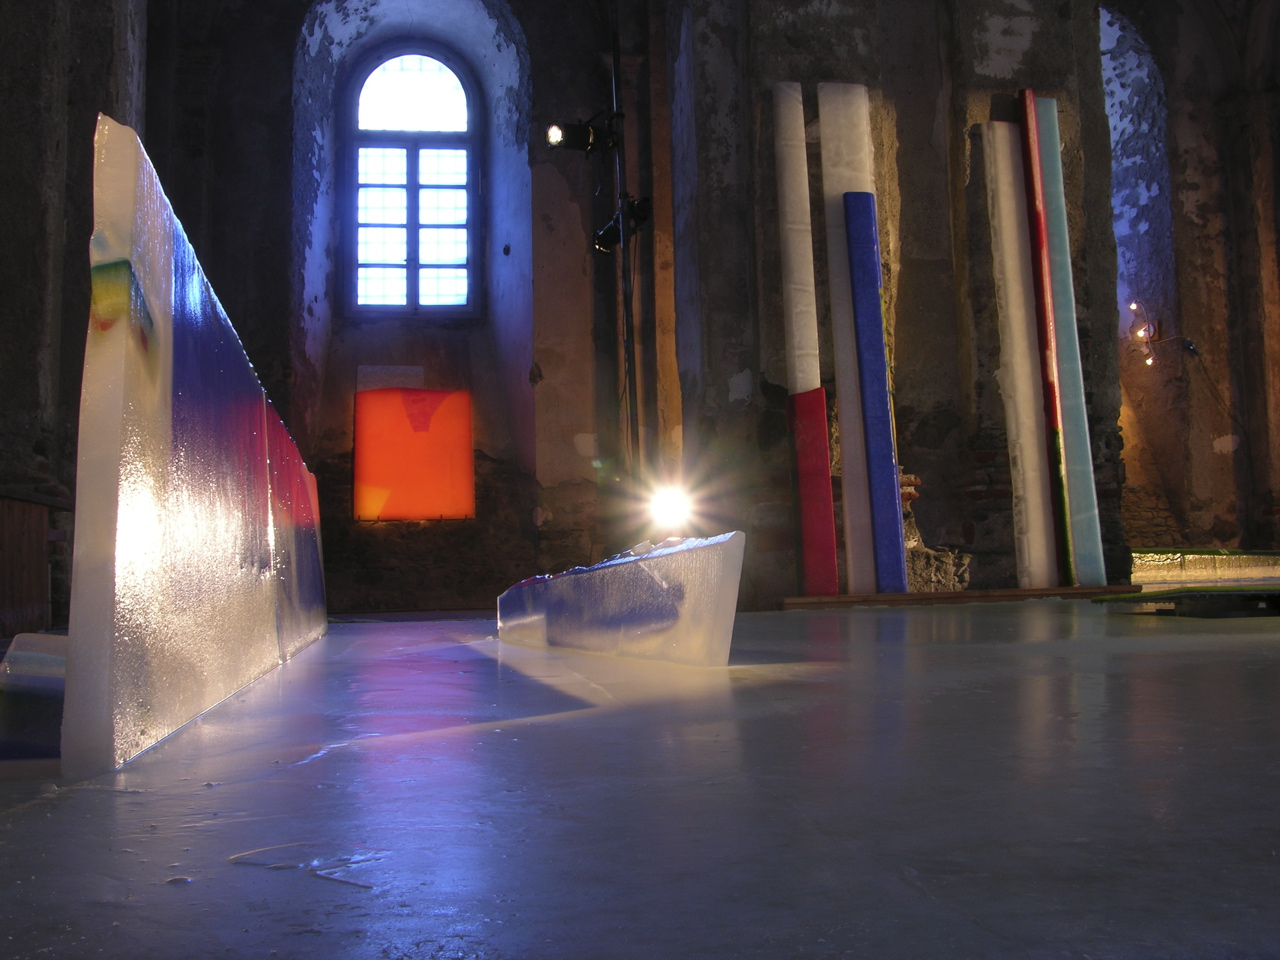 Gordon Halloran's 3 dimensional abstract paintings imbedded in ice at the 2006 Torino Olympic Games